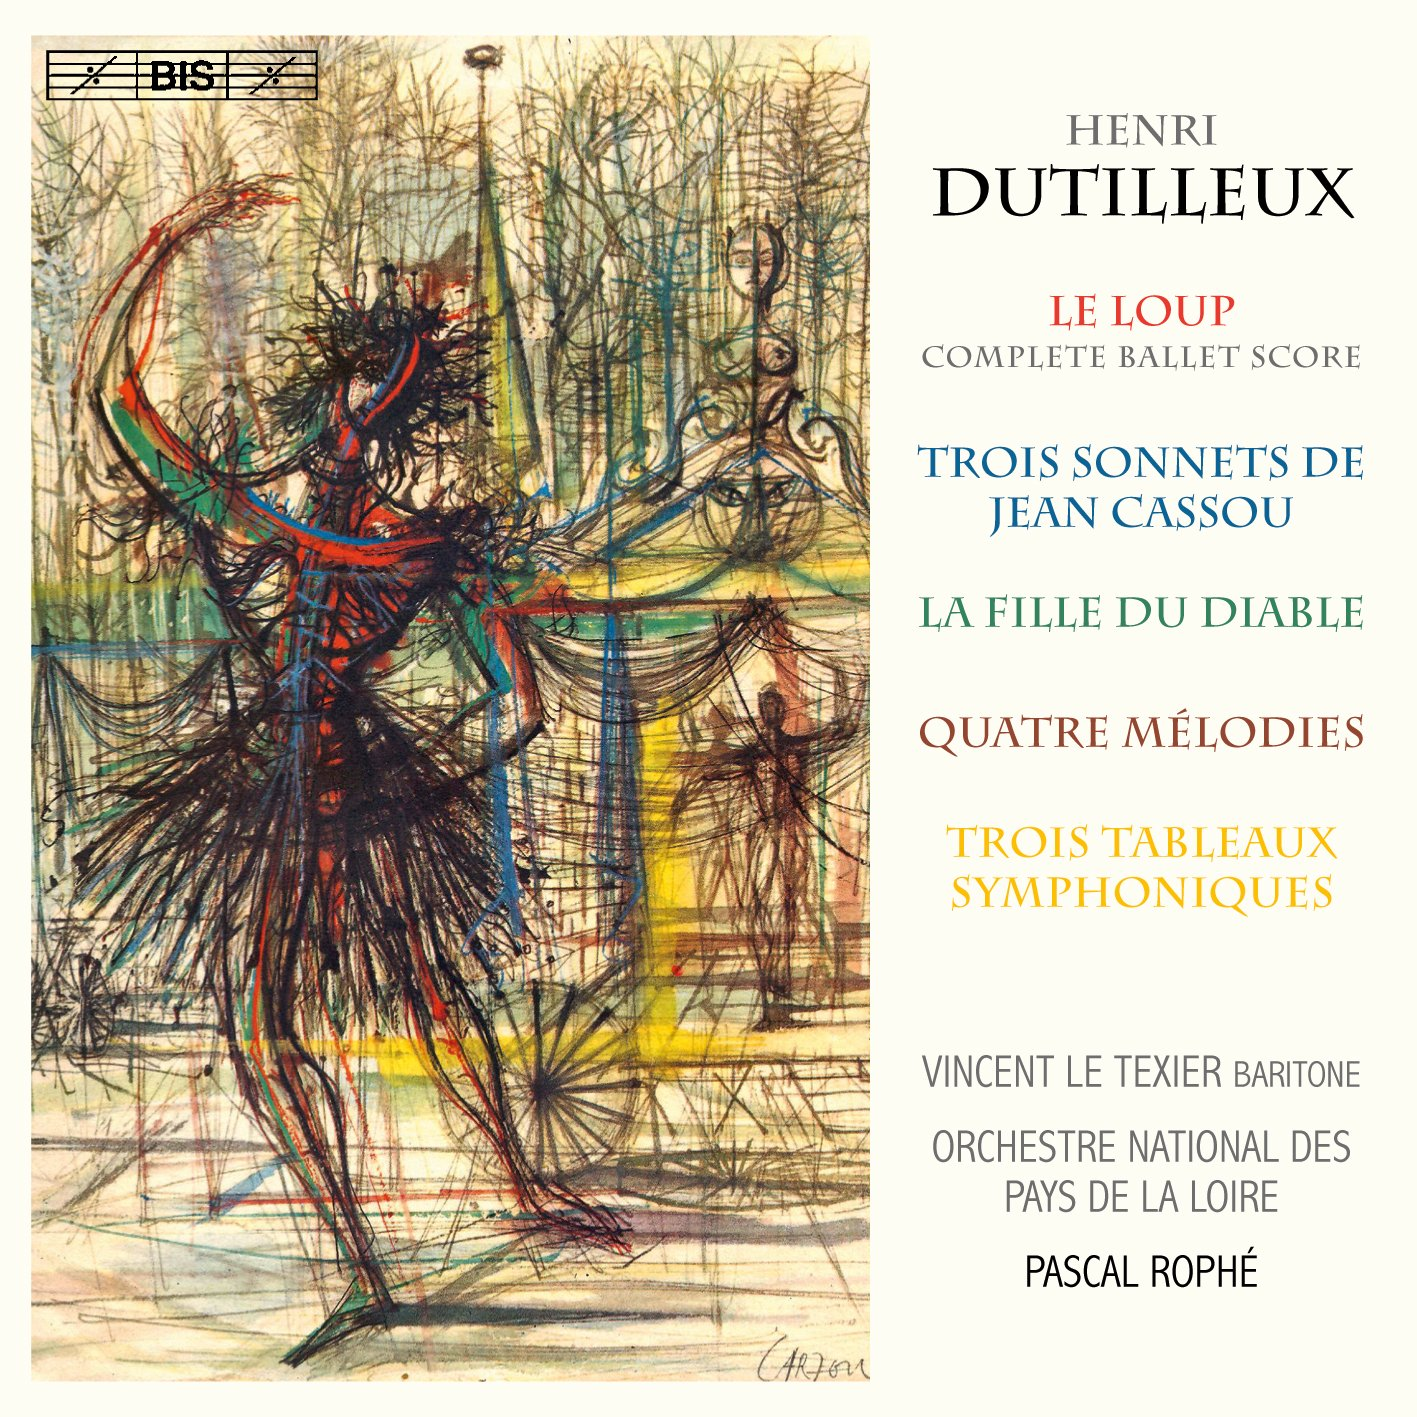 Dutilleux-Oeuvres orchestrales - Page 4 81mhrideXNL